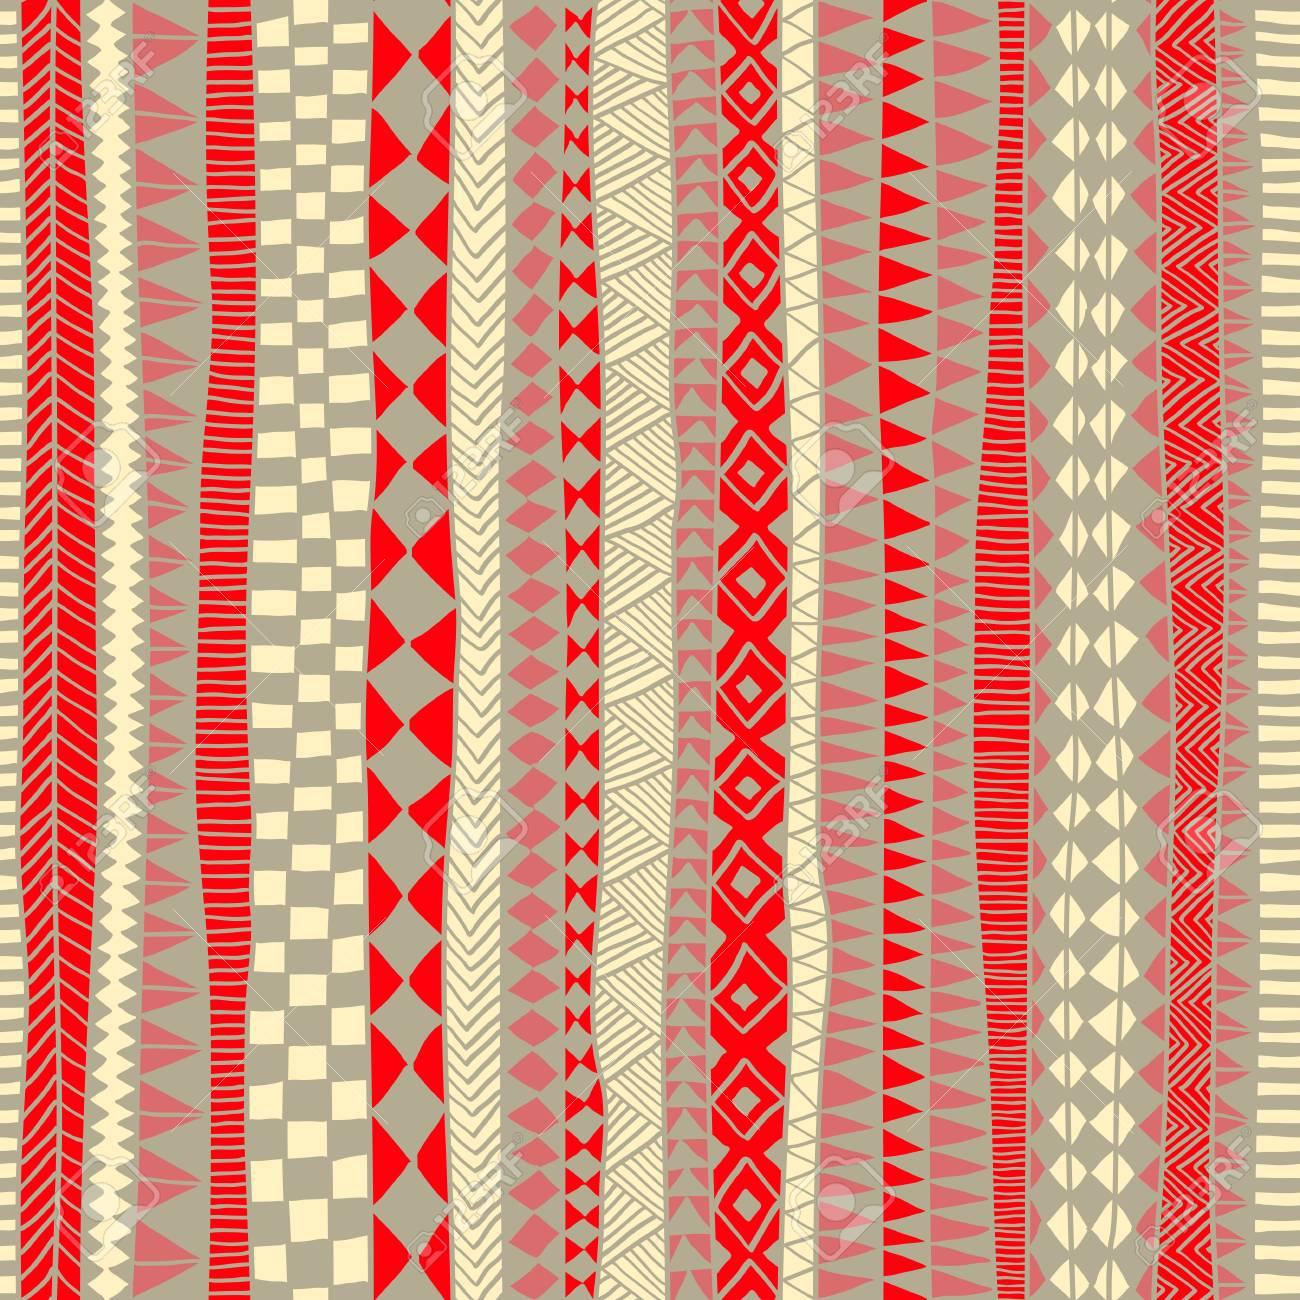 Seamless tribal pattern. Vertical orientation. Striped print for textiles. Red, white and gray colors. Vector illustration.